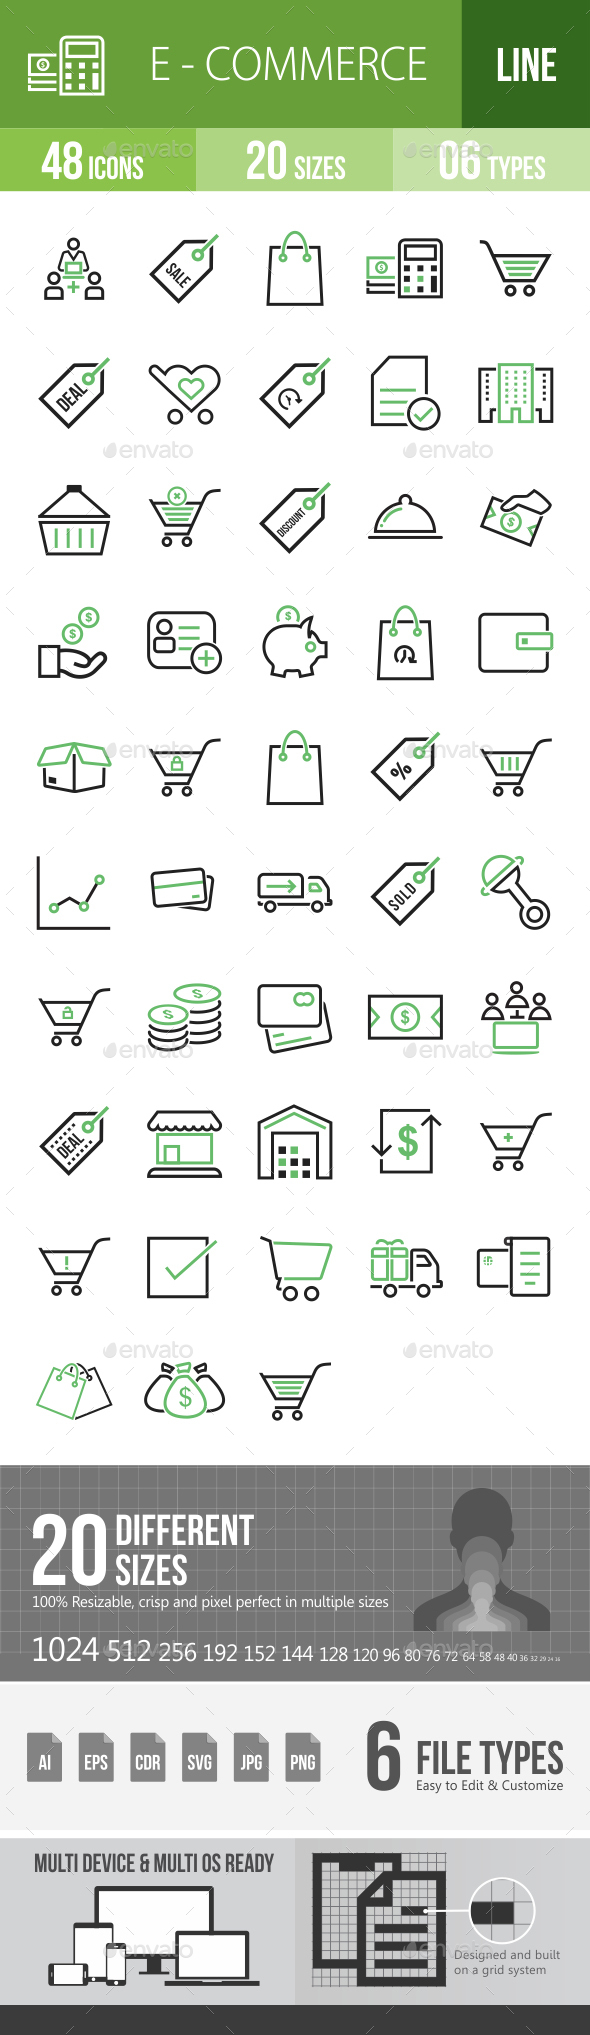 48 Ecommerce Green & Black Line Icons - Icons